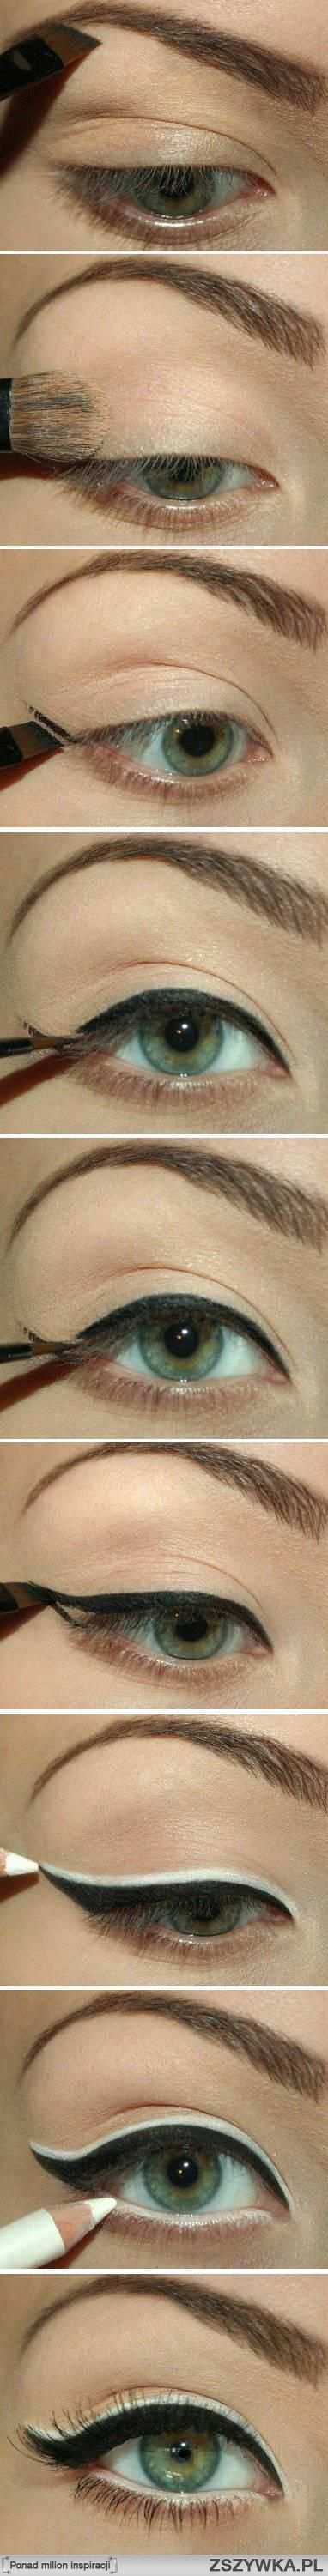 Wing tipped eyeliner with black and topped with white line, different #eyes #makeup